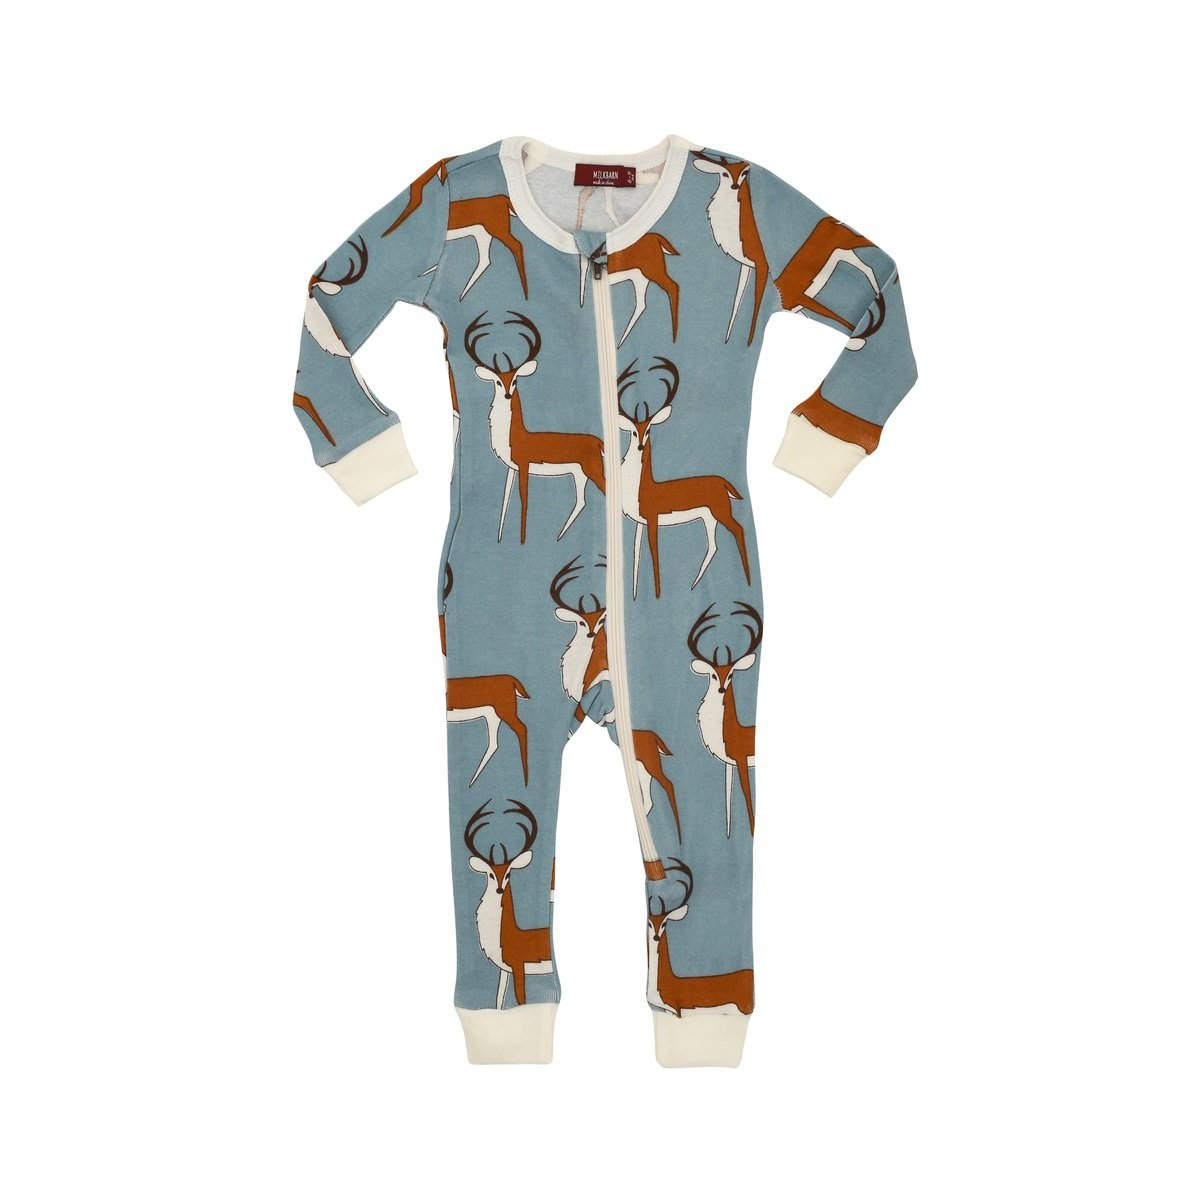 ecaa2e8da Amazon.com  MilkBarn Organic Cotton Zipper Pajama - Blue Buck  Clothing